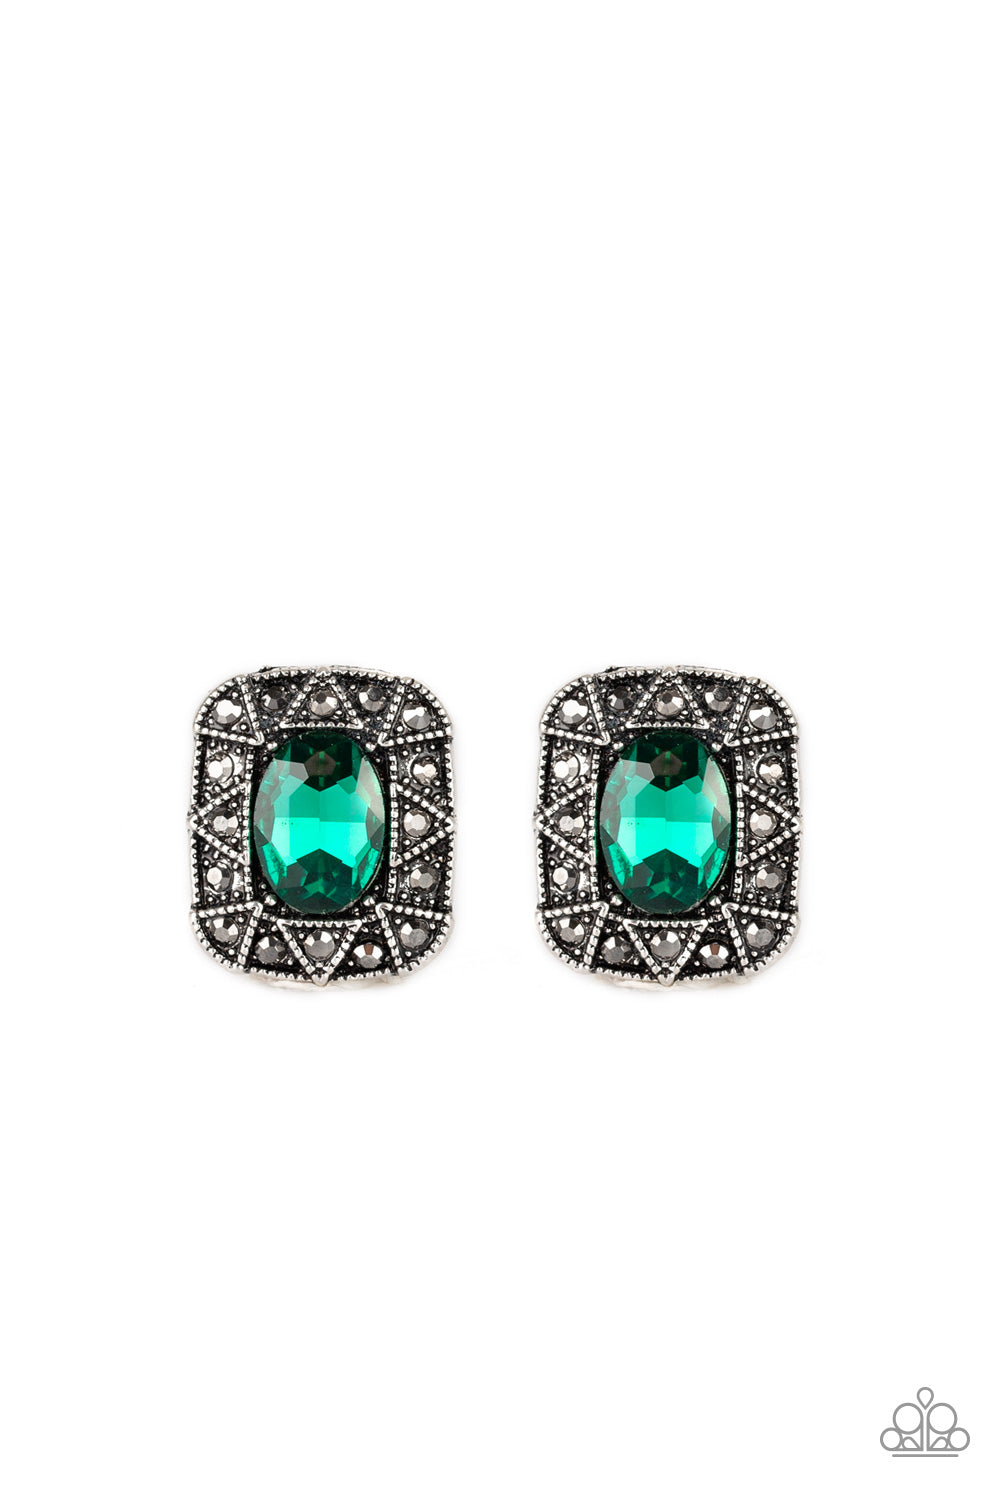 Paparazzi Accessories - Young Money - Green Earrings - JMJ Jewelry Collection